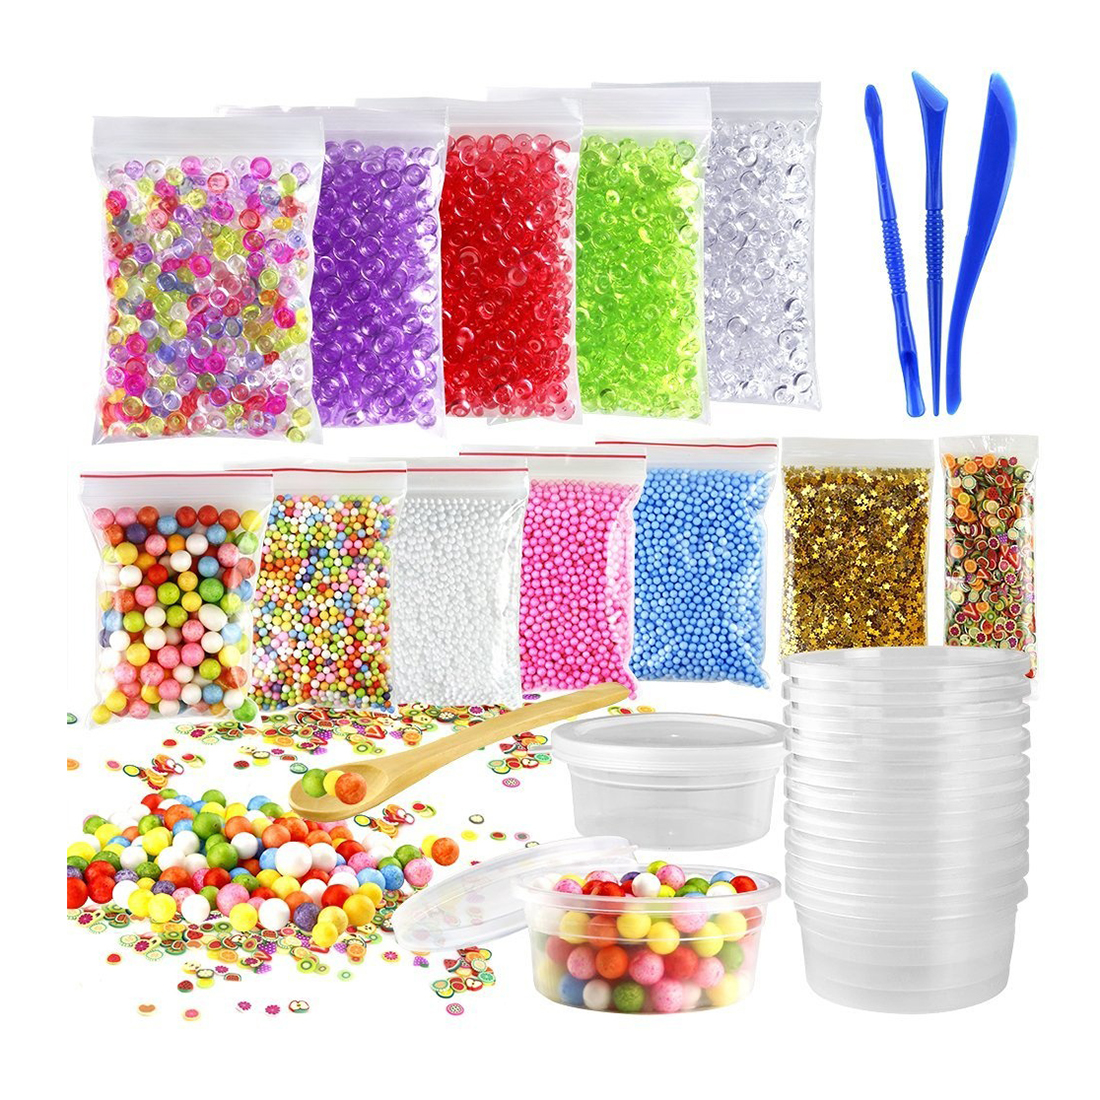 Top 15 Pack Including Fishbowl Beads, Foam Balls, Foam Ball Storage Containers, Confetti, Fruit Slices for Slime Making A